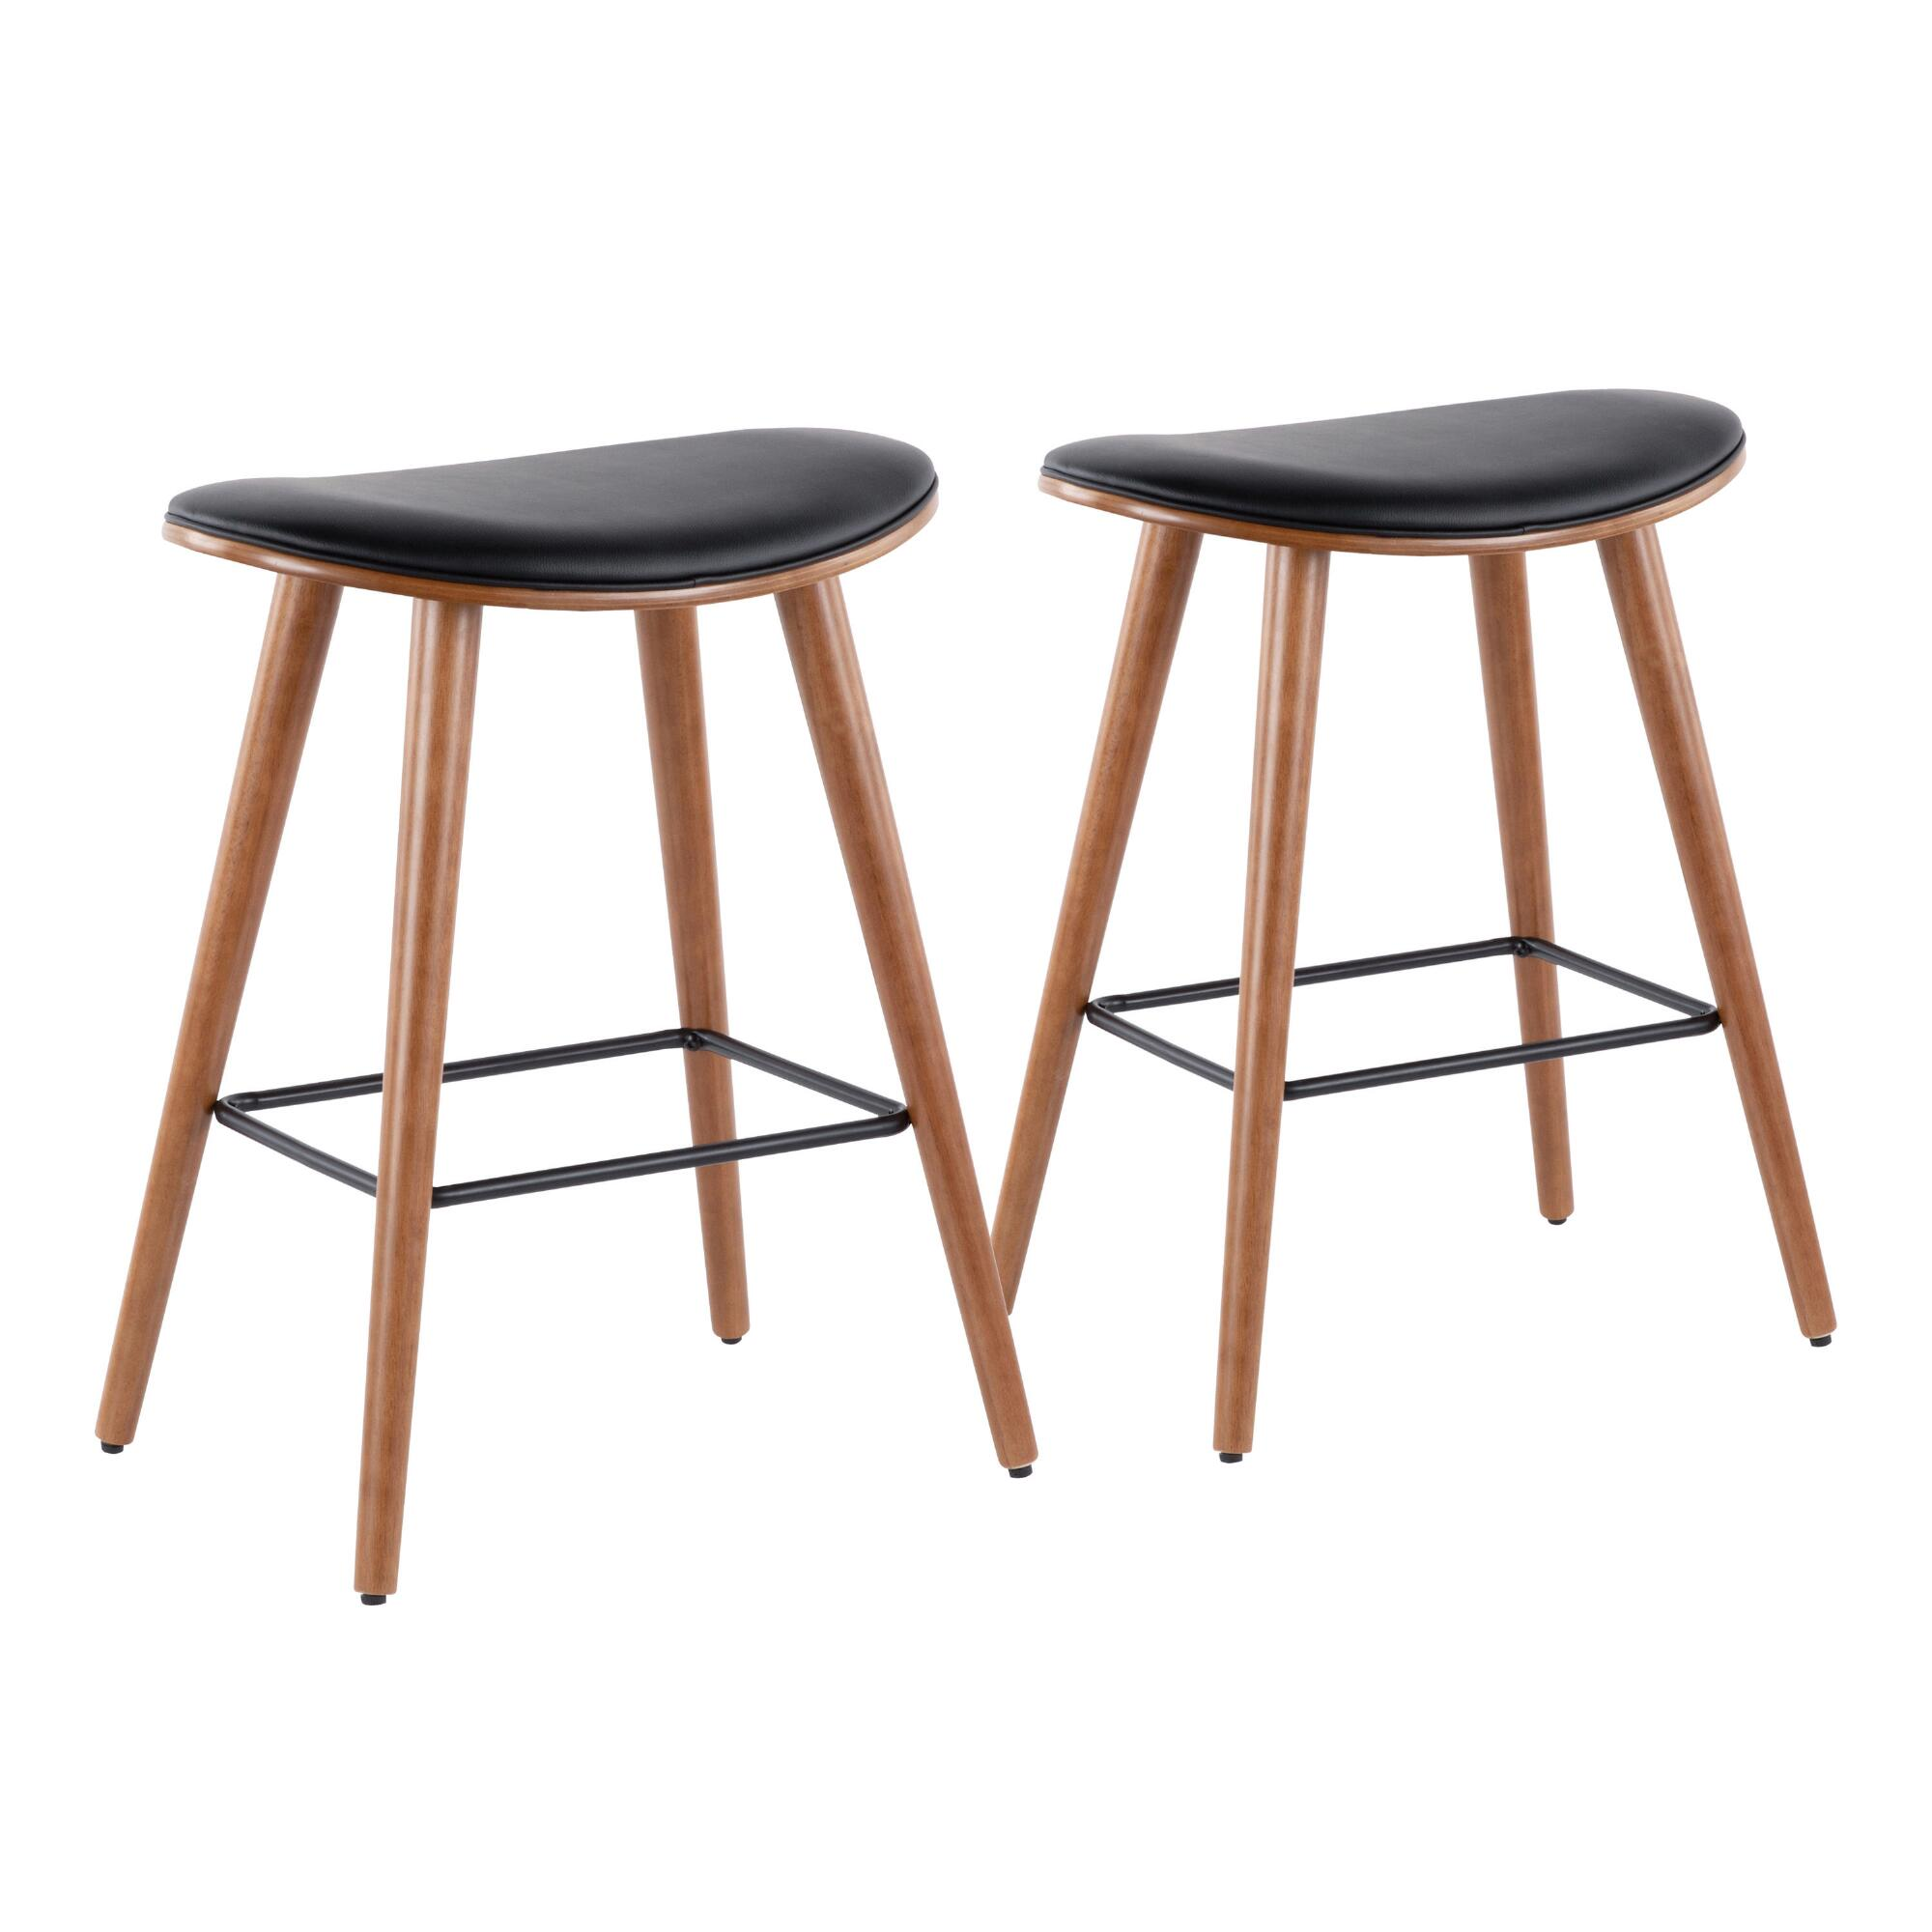 Faux Leather Luna Upholstered Counter Stools Set Of 2 $399.99